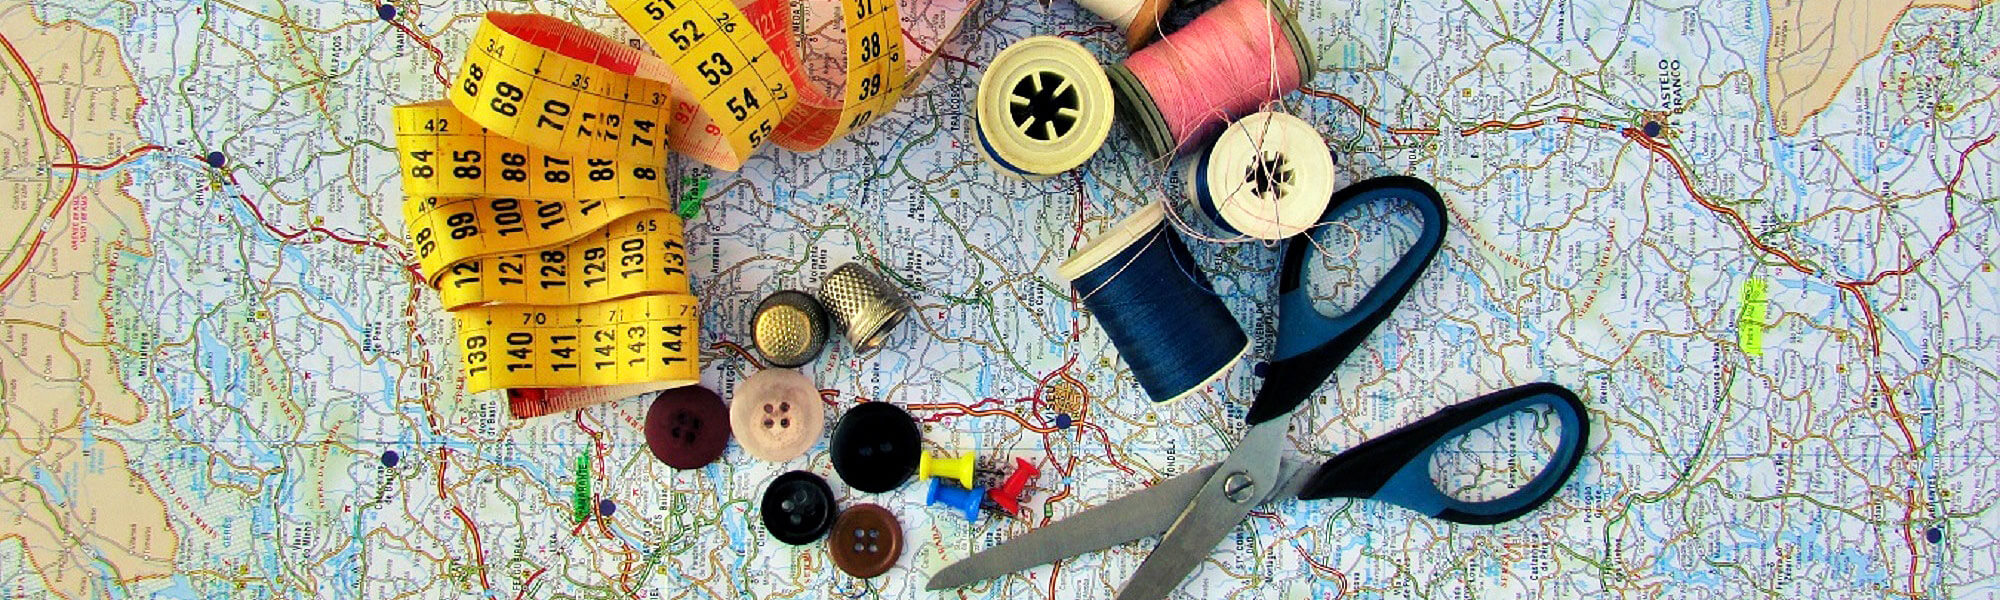 A map, a pair of scissors, buttons, a sewing kit, a thimble, a ruler and pins.